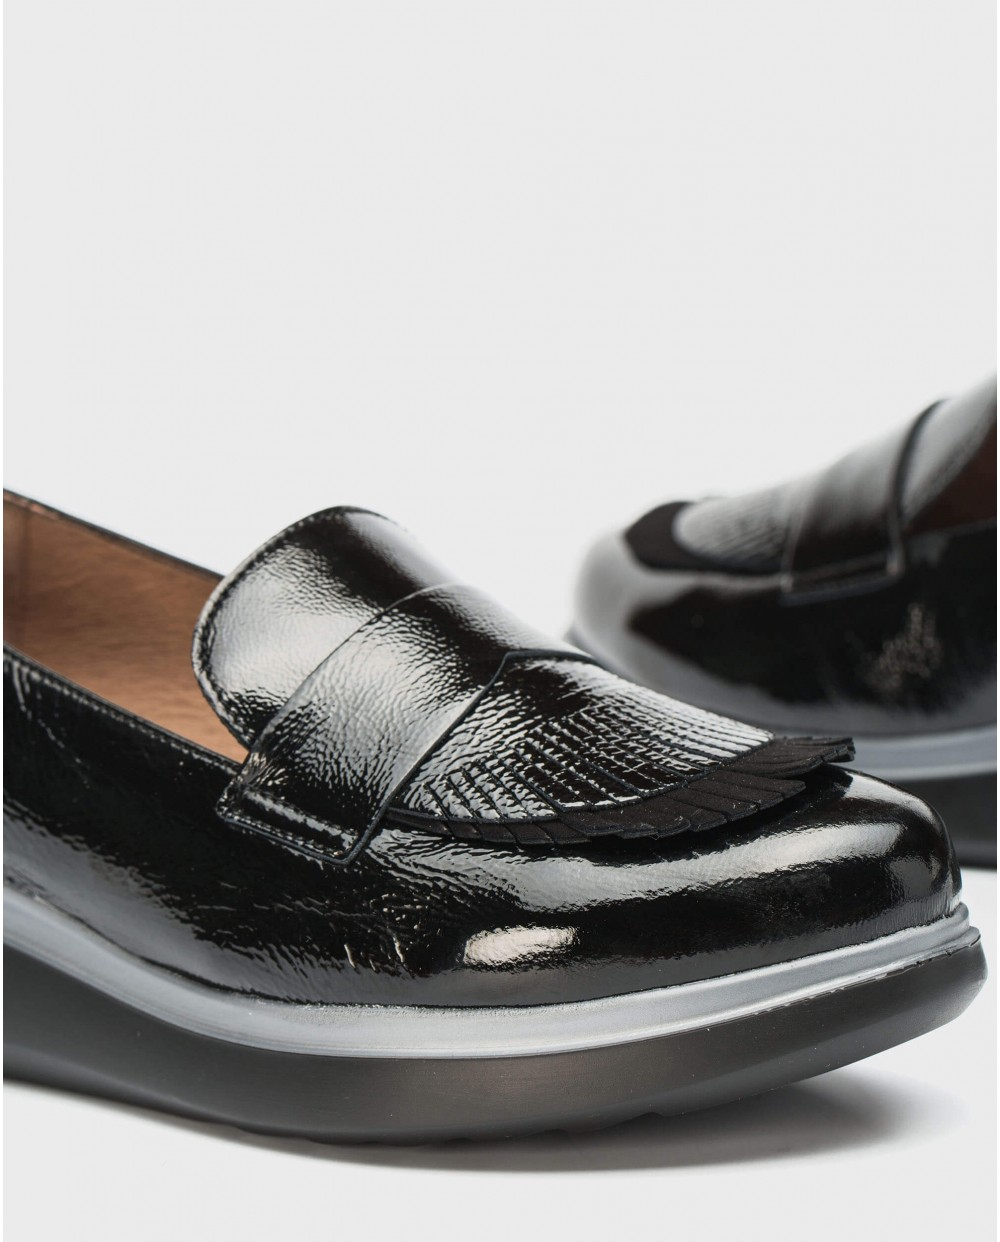 Wonders-Flat Shoes-Patent leather moccasins with fringe